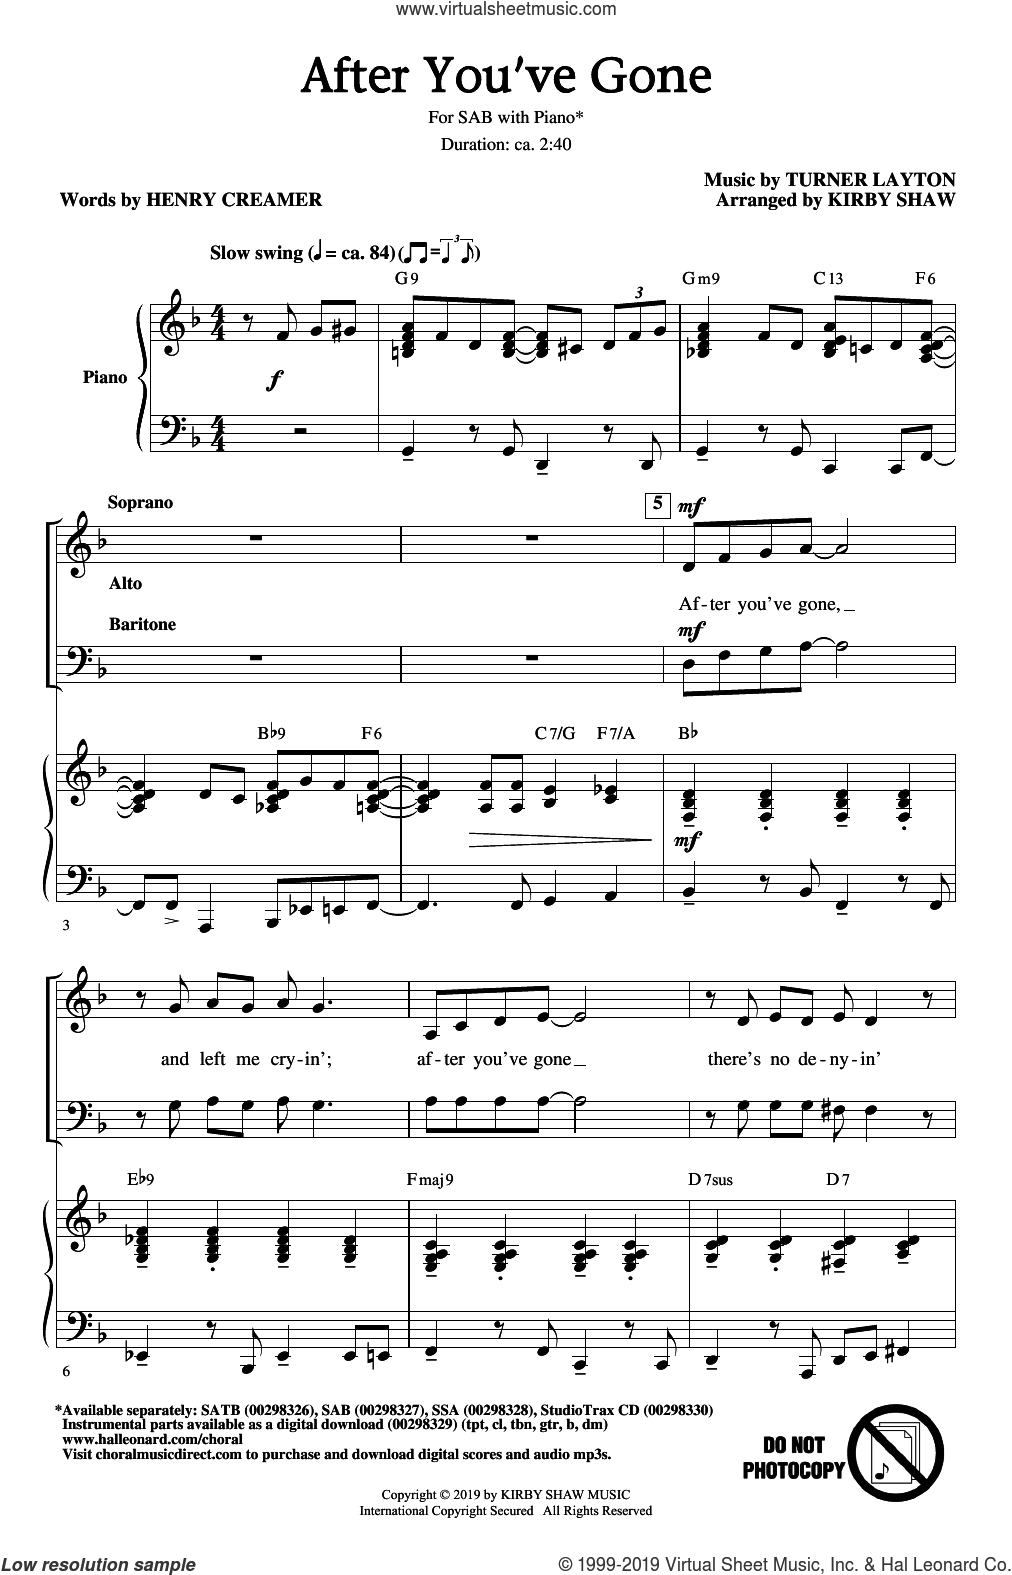 After You've Gone (from One Mo' Time) (arr. Kirby Shaw) sheet music for choir (SAB: soprano, alto, bass) by Henry Creamer, Kirby Shaw, Henry Creamer and Turner Layton and Turner Layton, intermediate skill level